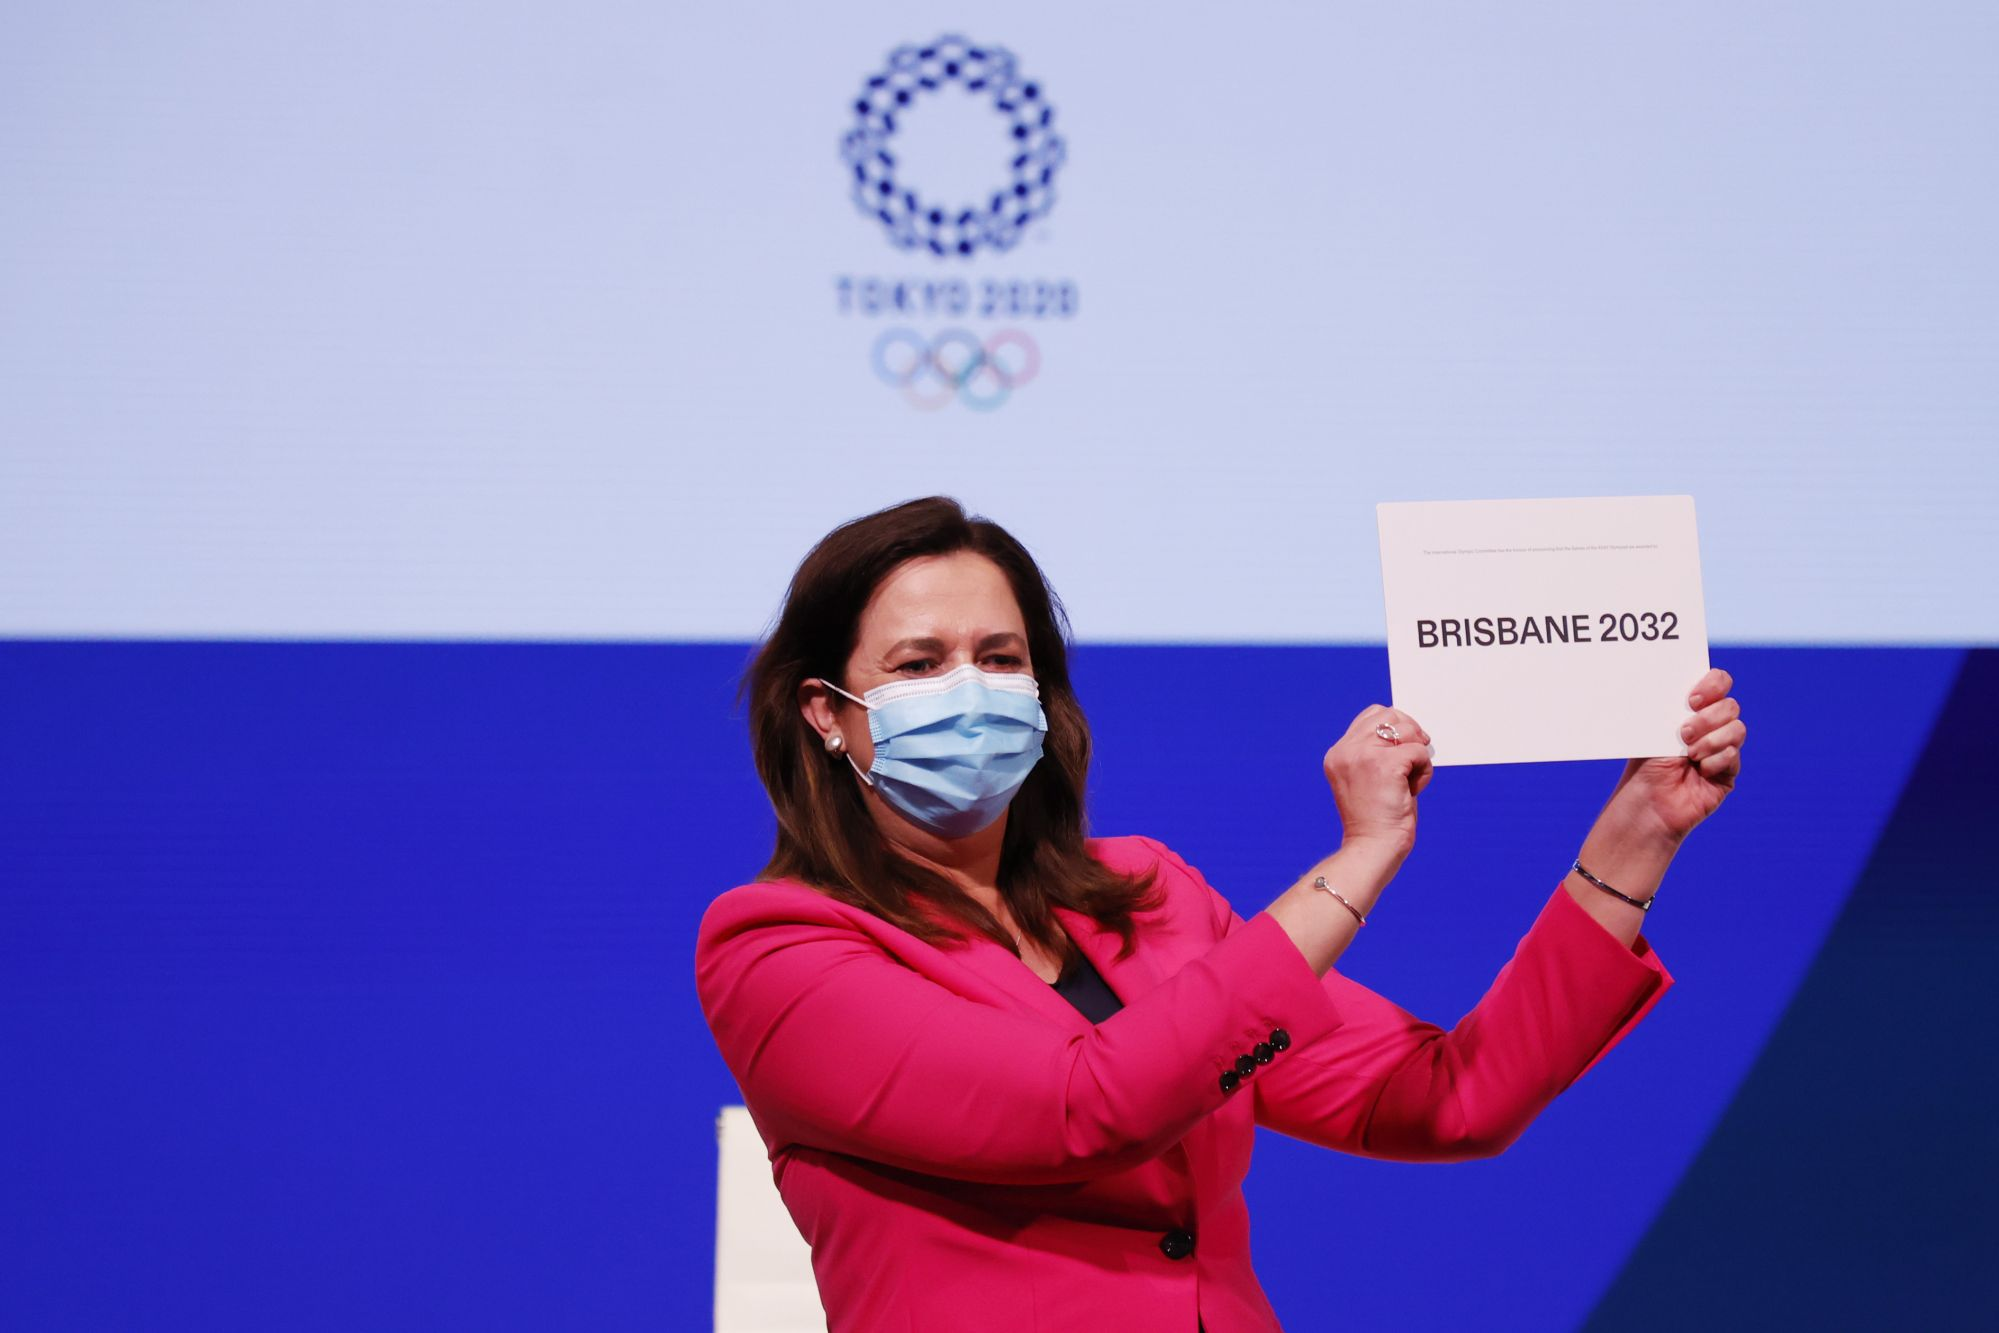 TOKYO, JAPAN - JULY 21:  The Honourable Annastacia Palaszczuk MP, celebrates after Brisbane was announced as the 2032 Summer Olympics host city during the 138th IOC Session at Hotel Okura on July 21, 2021 in Tokyo, Japan.  (Photo by Toru Hanai/Getty Images)